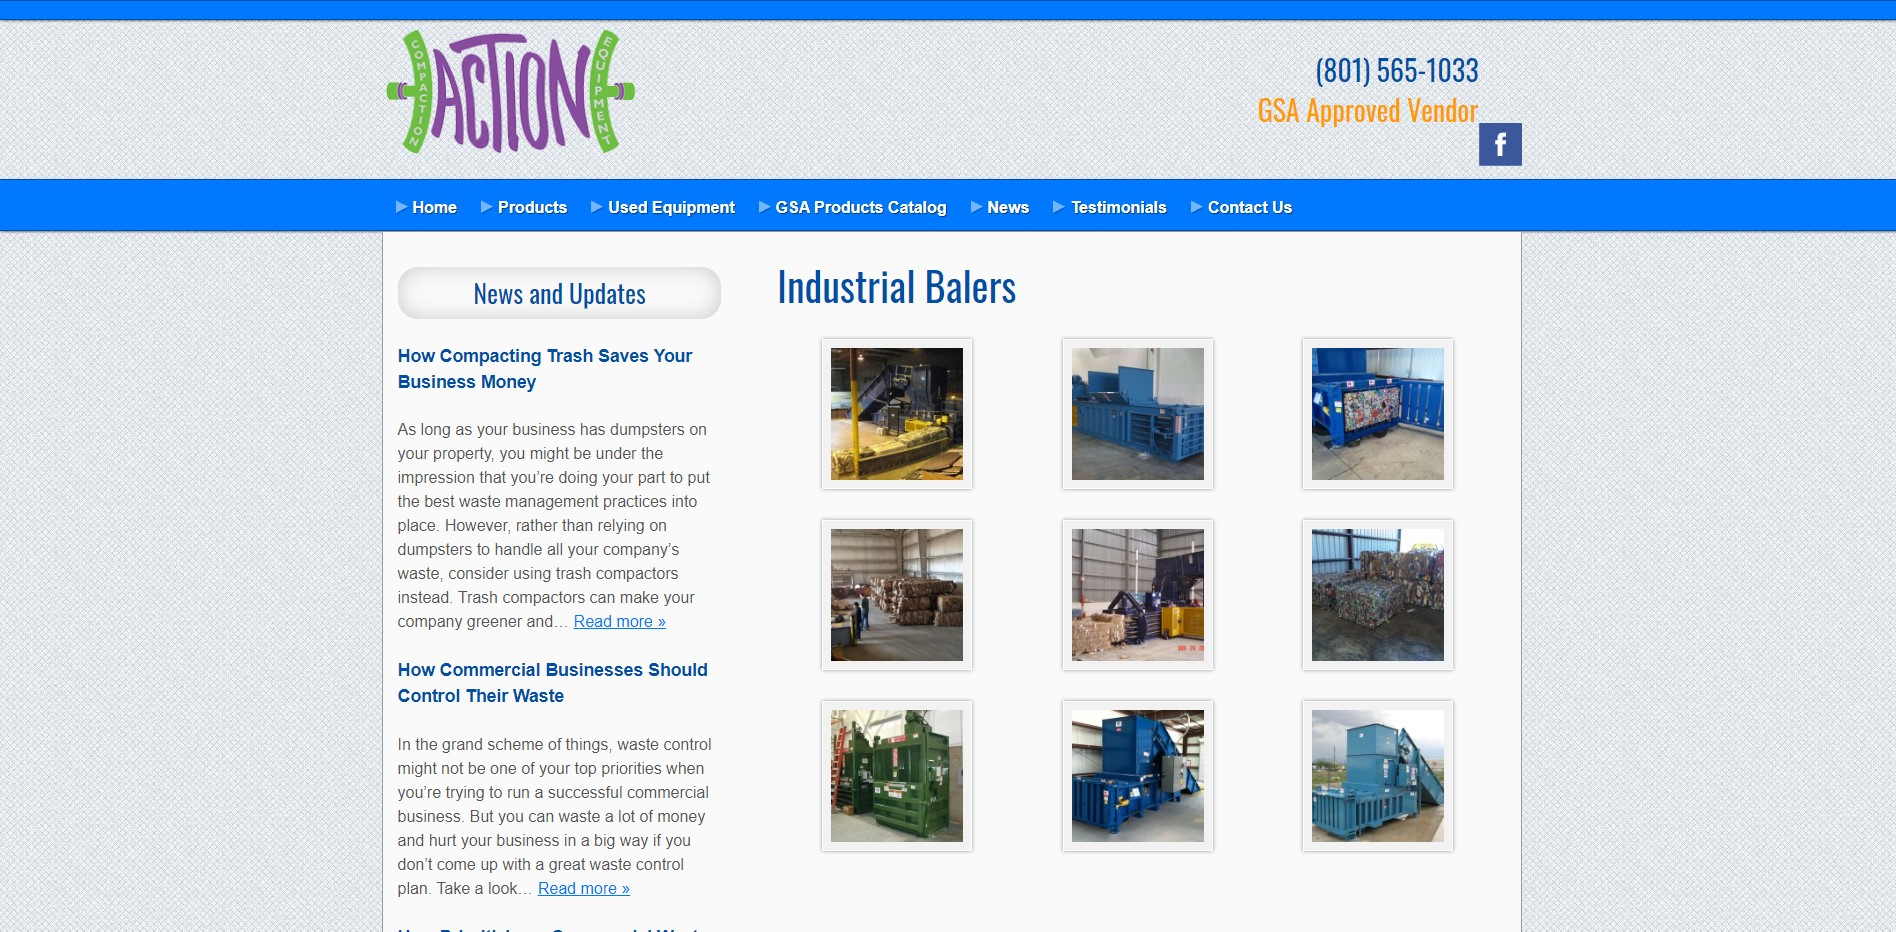 Action Compaction Equipment